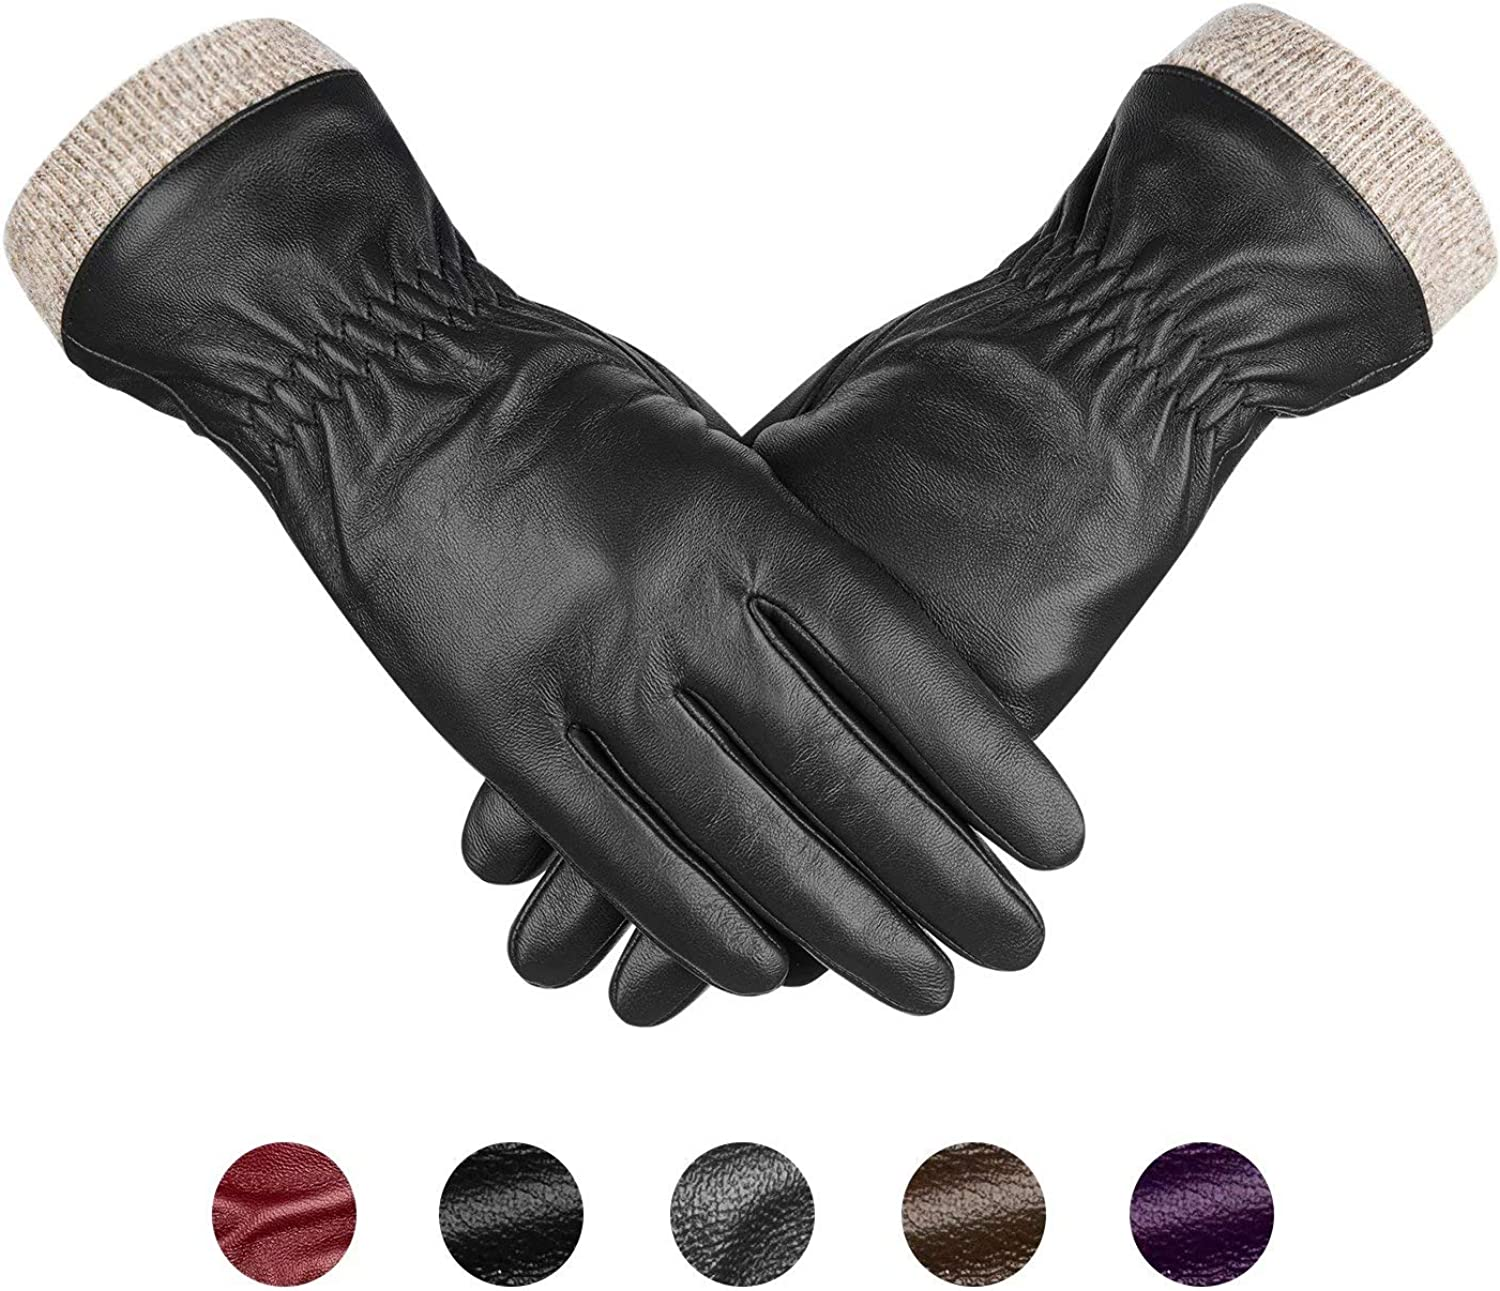 Genuine Sheepskin Leather Gloves For Women, Winter Warm Touchscreen Texting Cashmere Lined Driving Motorcycle Dress Gloves By Alepo (Black-M)